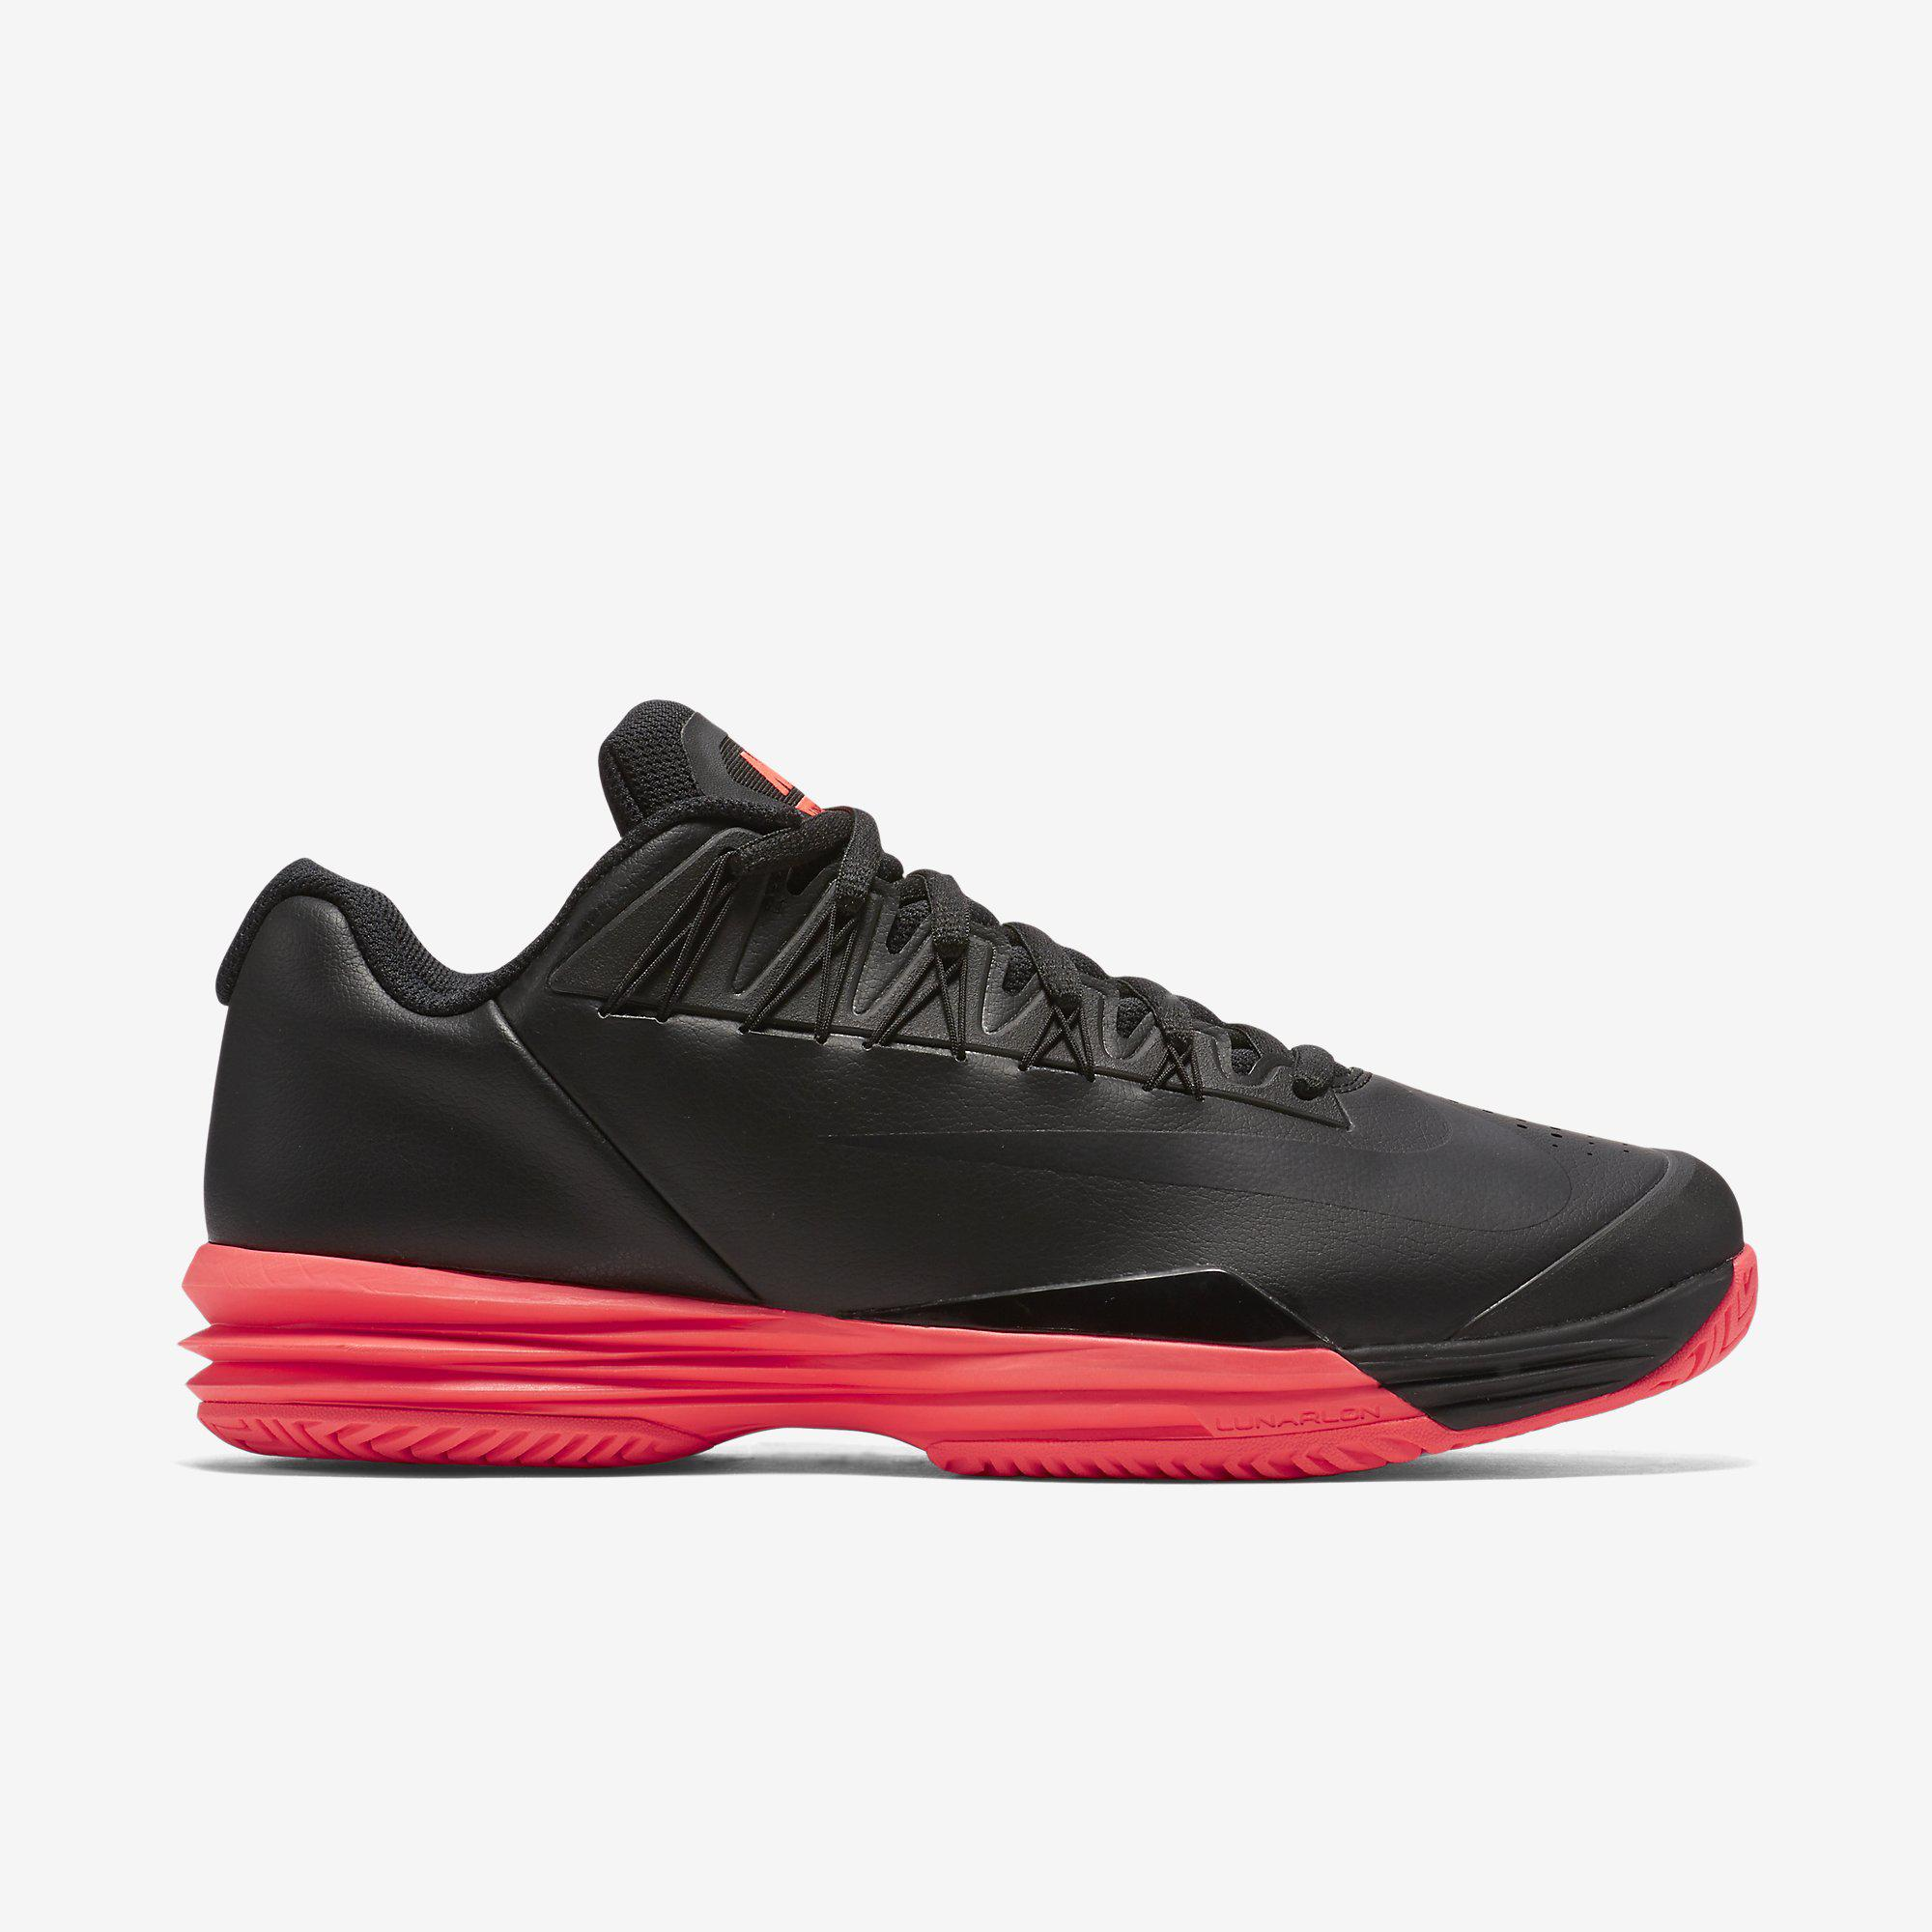 dc4dd5d7fda3 Nike Mens Lunar Ballistec 1.5 Tennis Shoes - Black Hot Lava - Tennisnuts.com